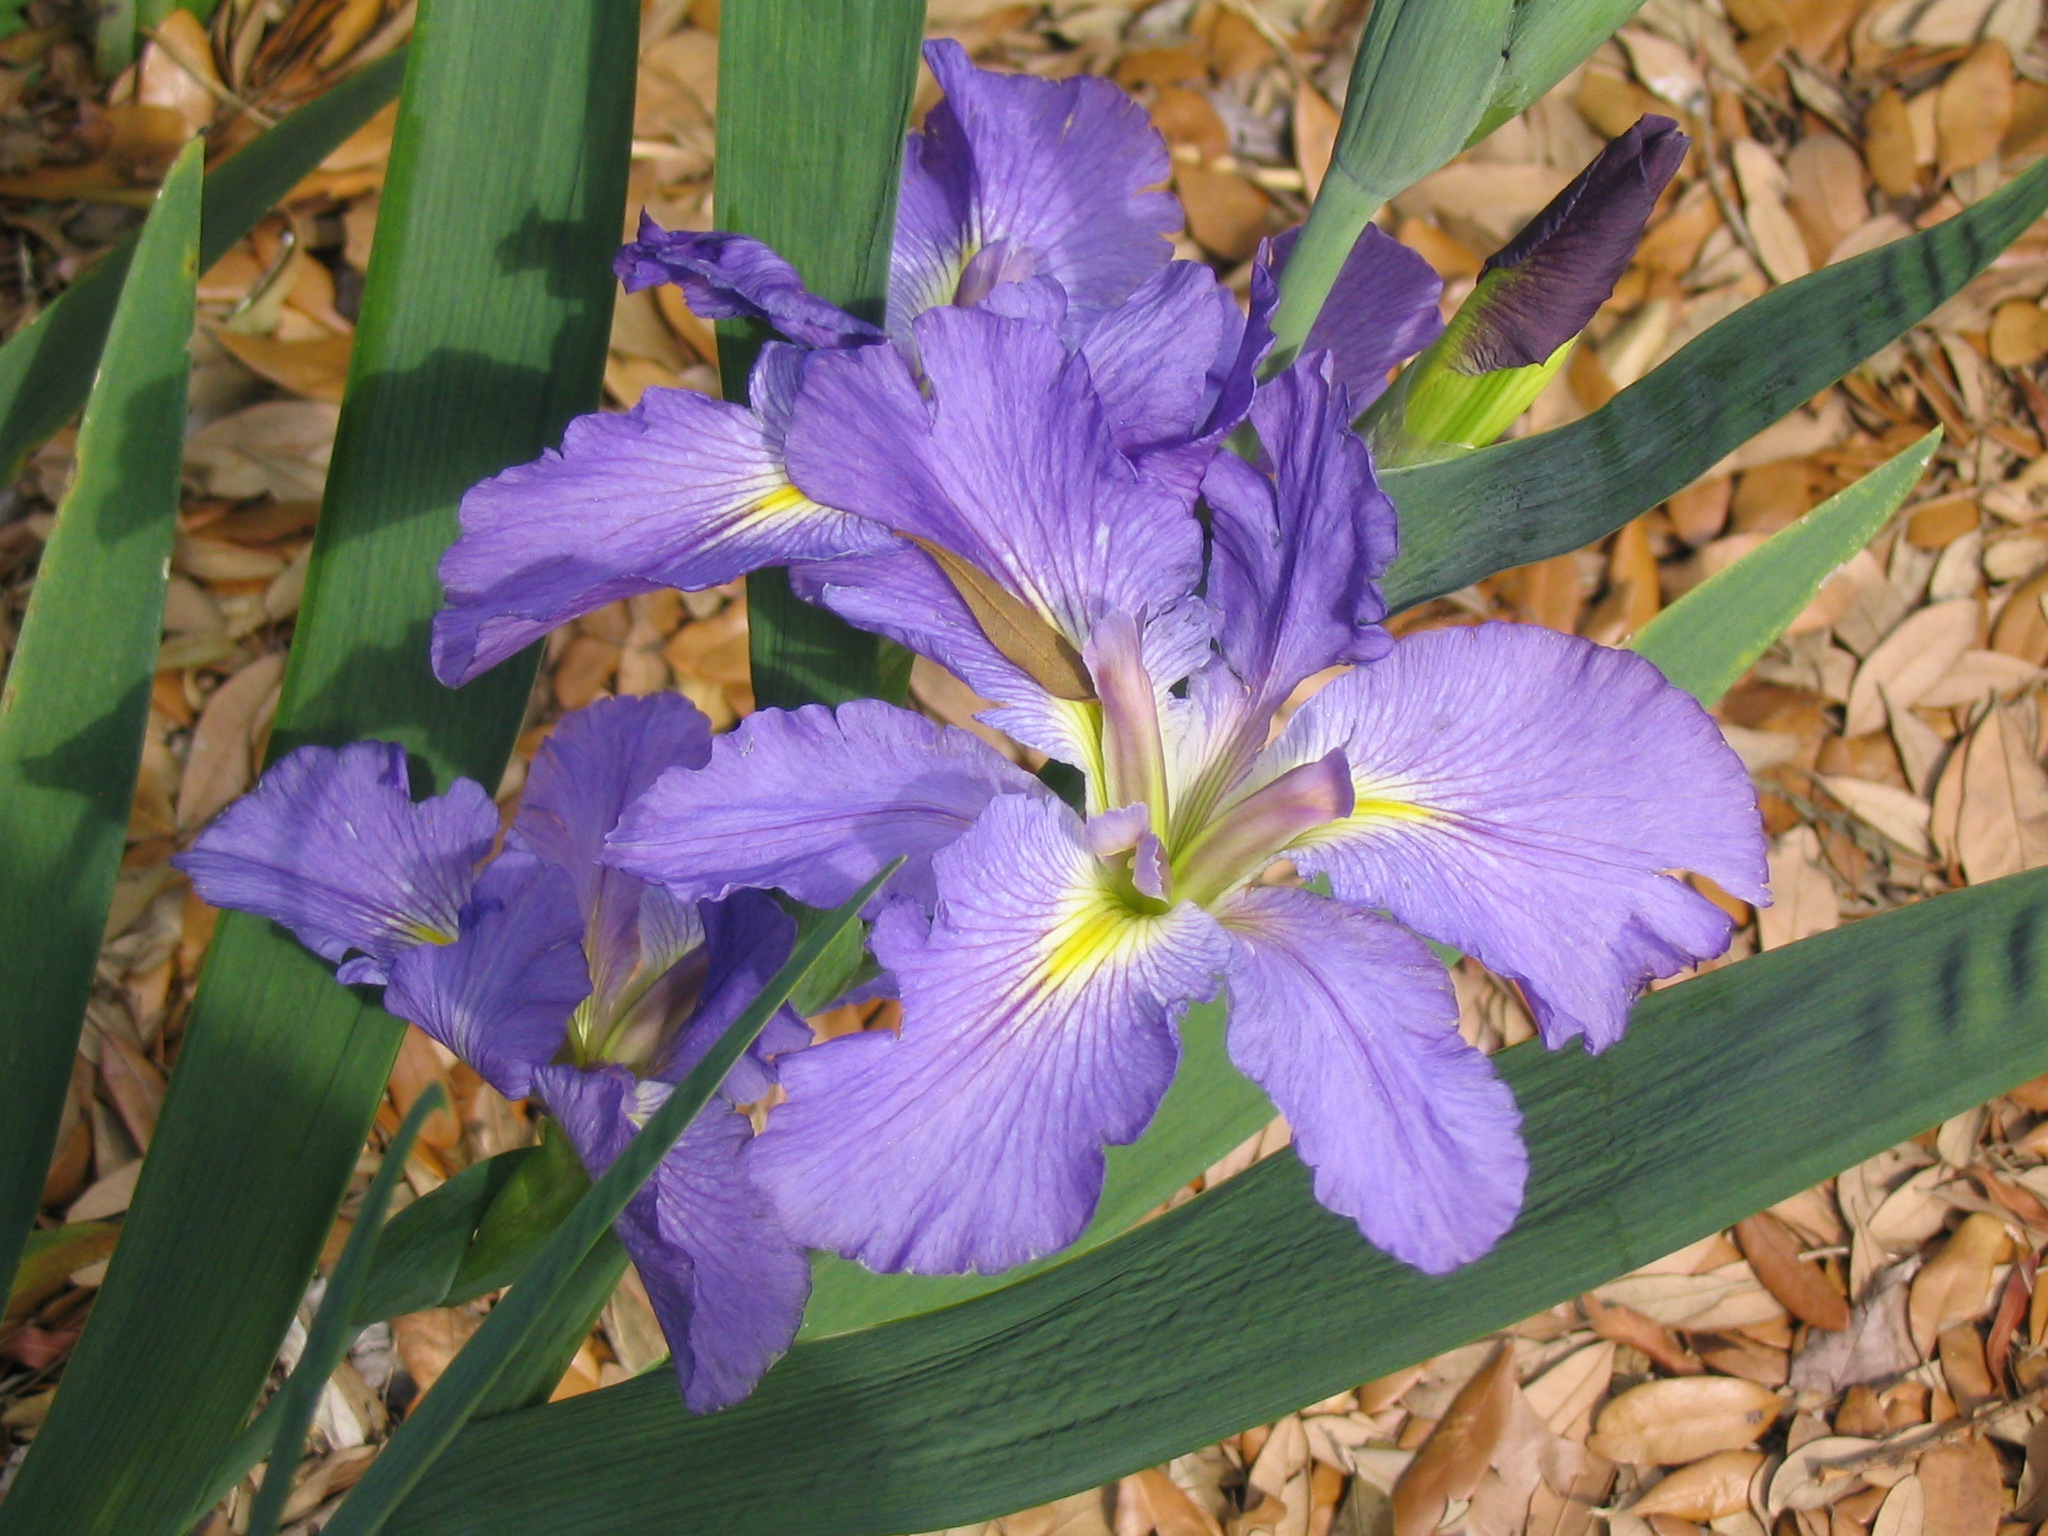 Its time to divide Louisiana irises